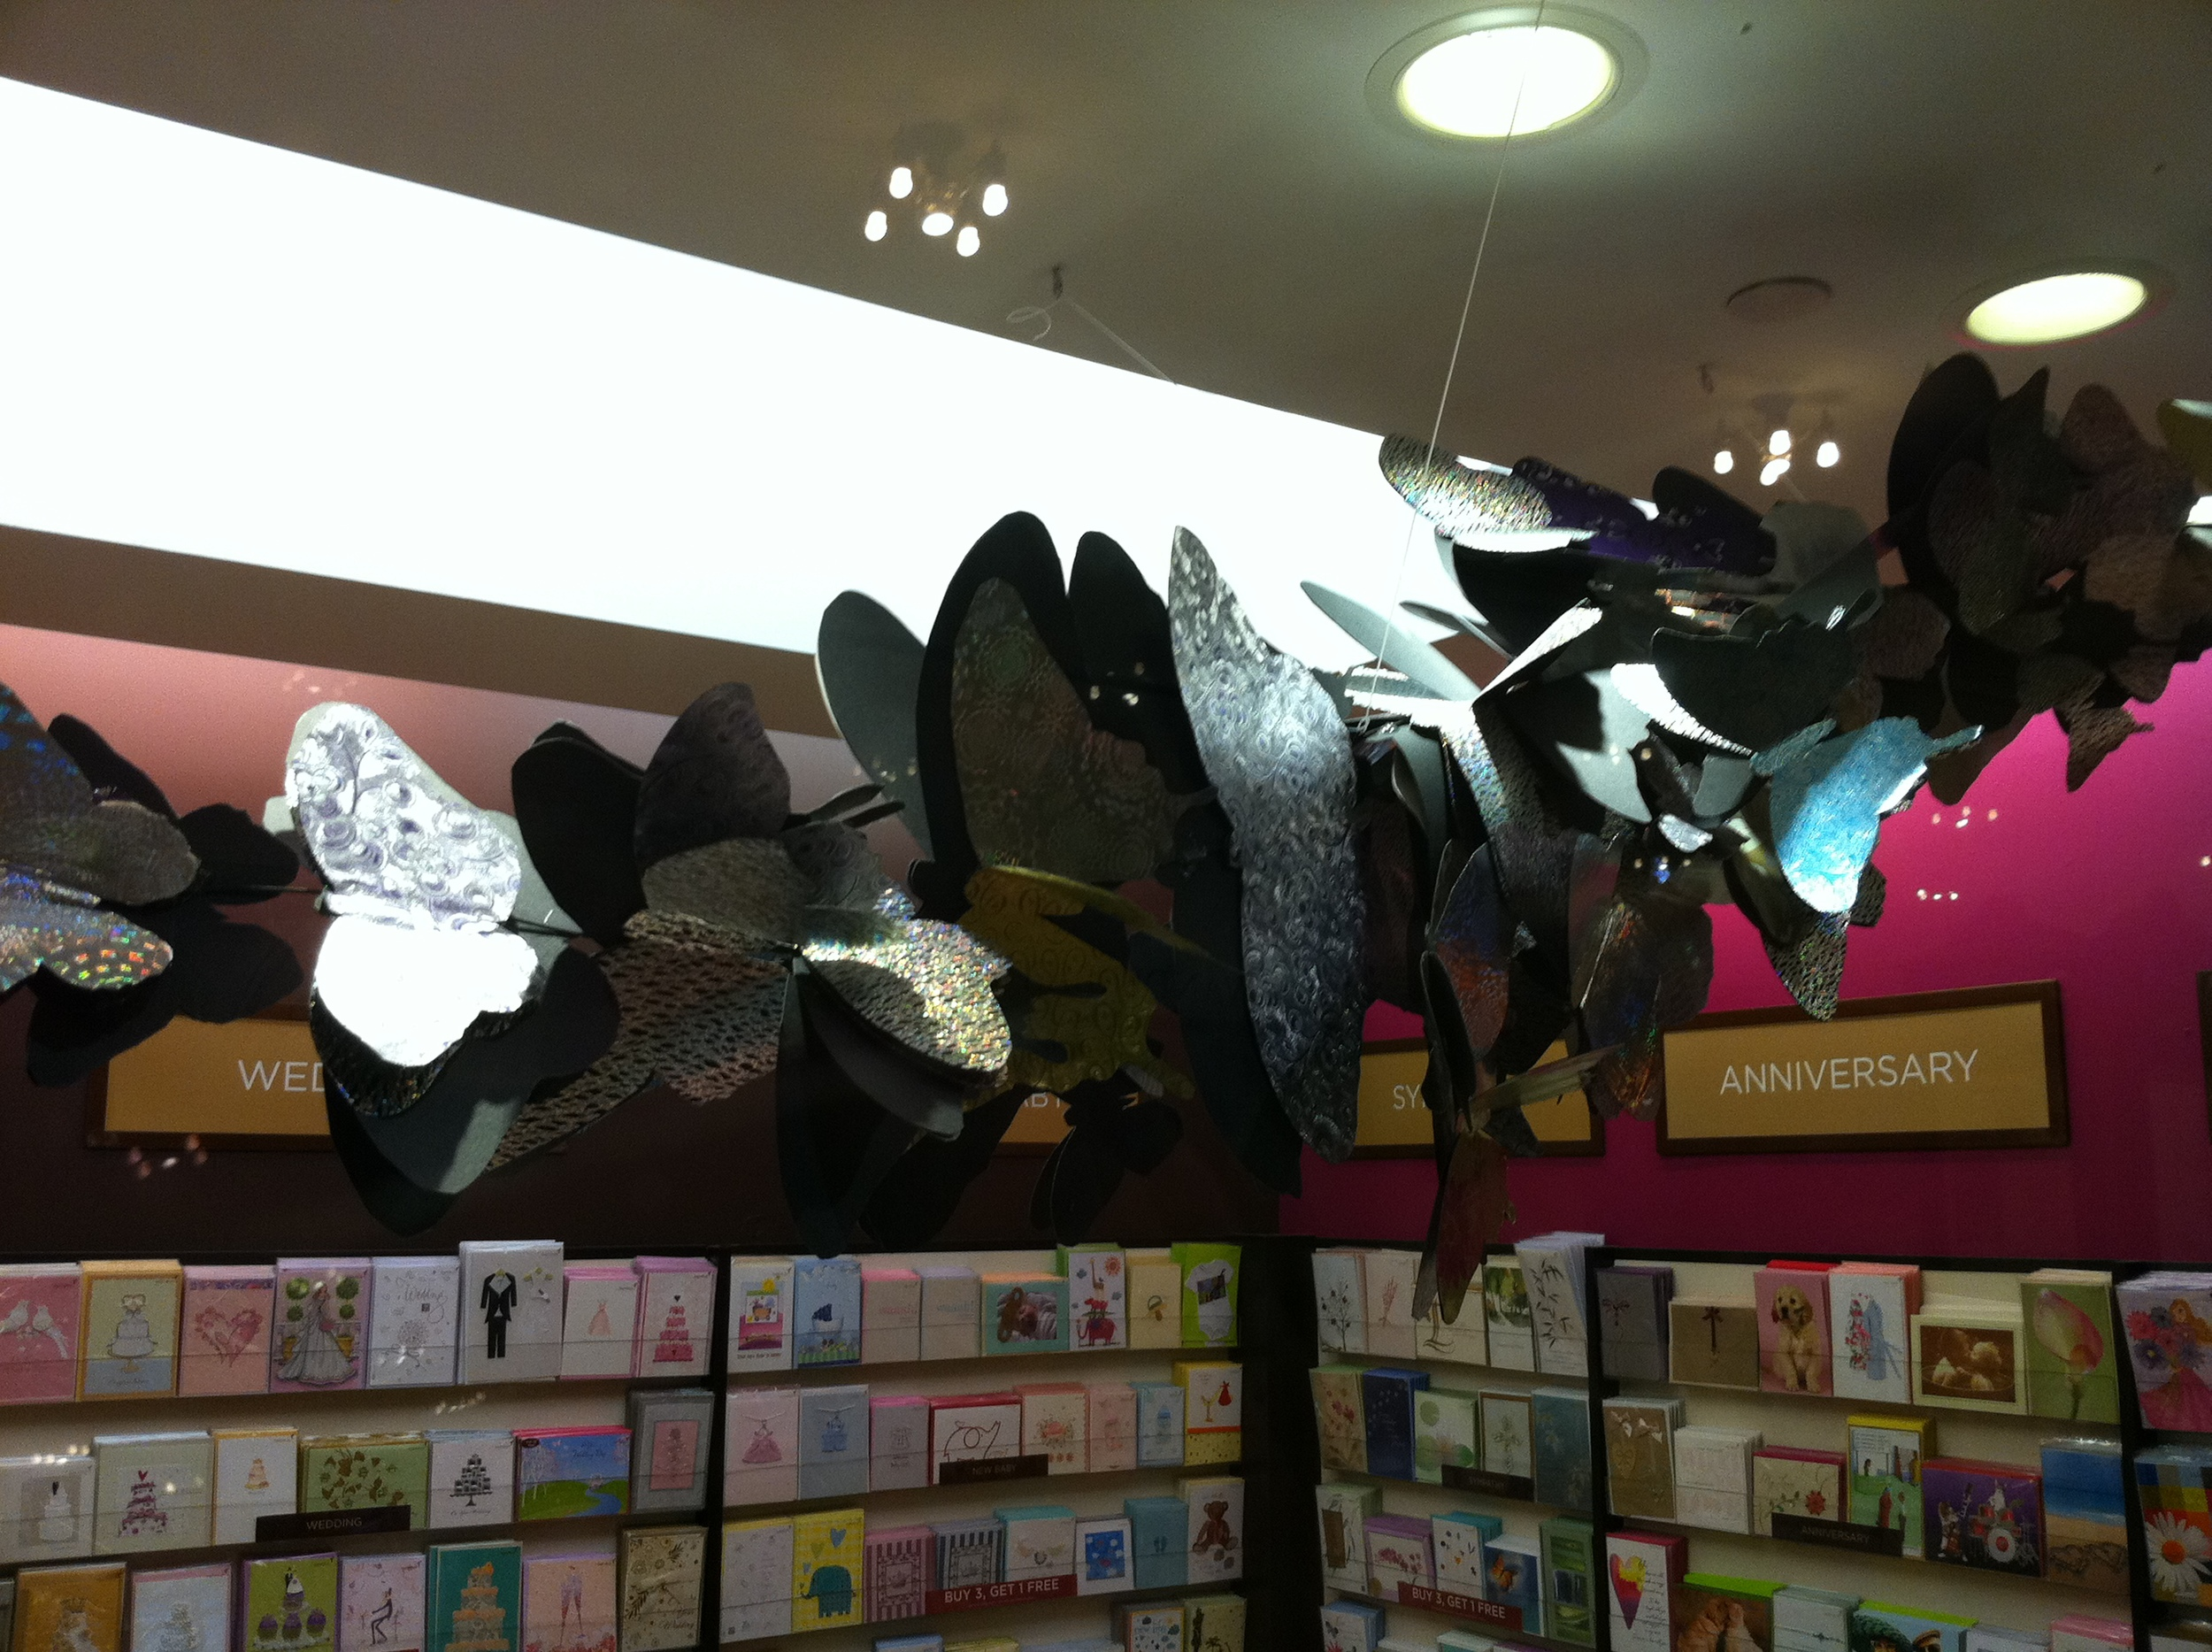 PAPYRUS STORE BUTTERFLY DISPLAY GRAND CENTRAL STATION NEW YORK CITY 3